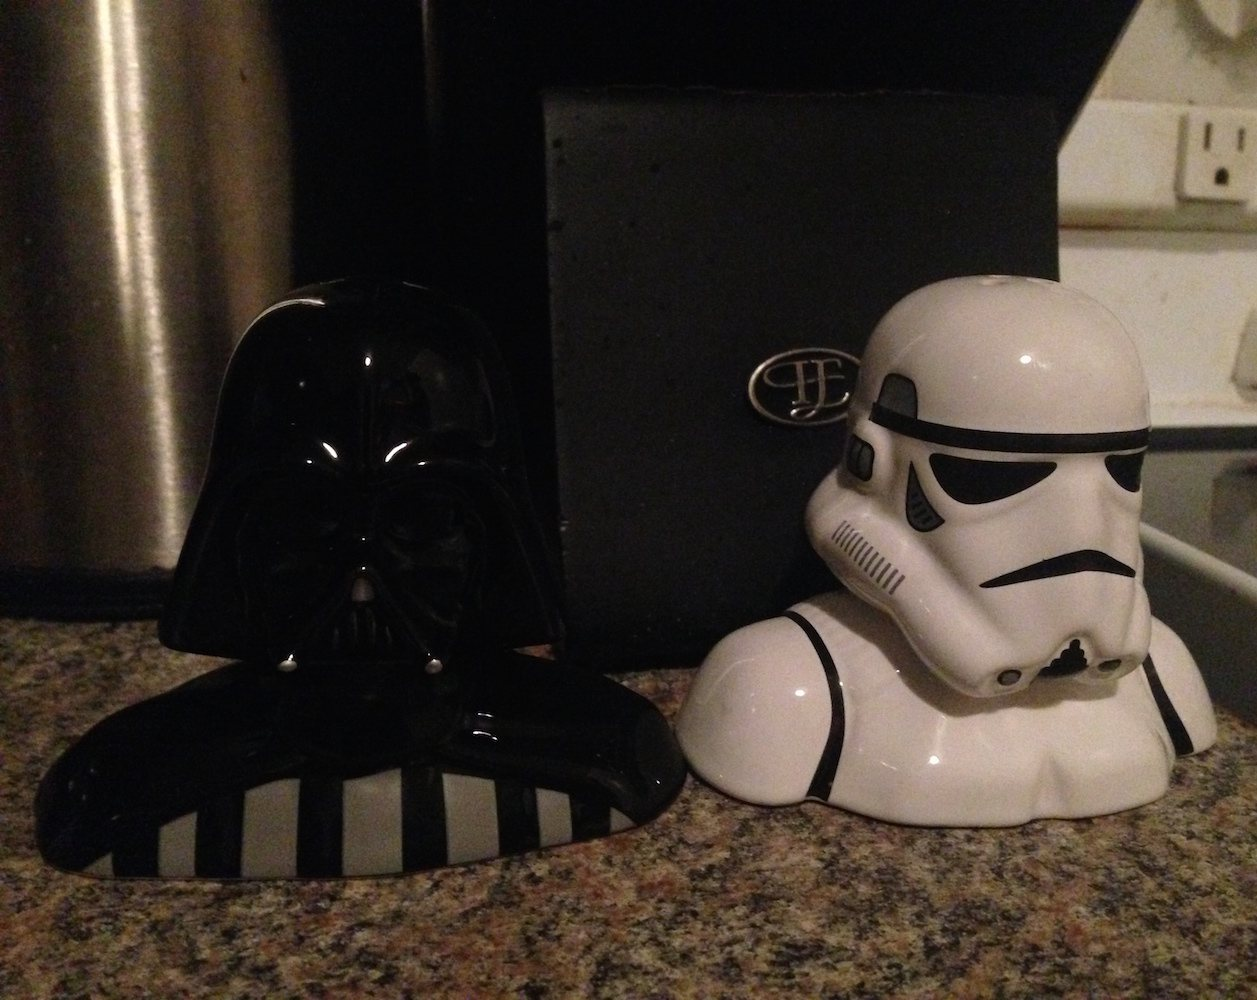 star-wars-salt-pepper-shakers-03